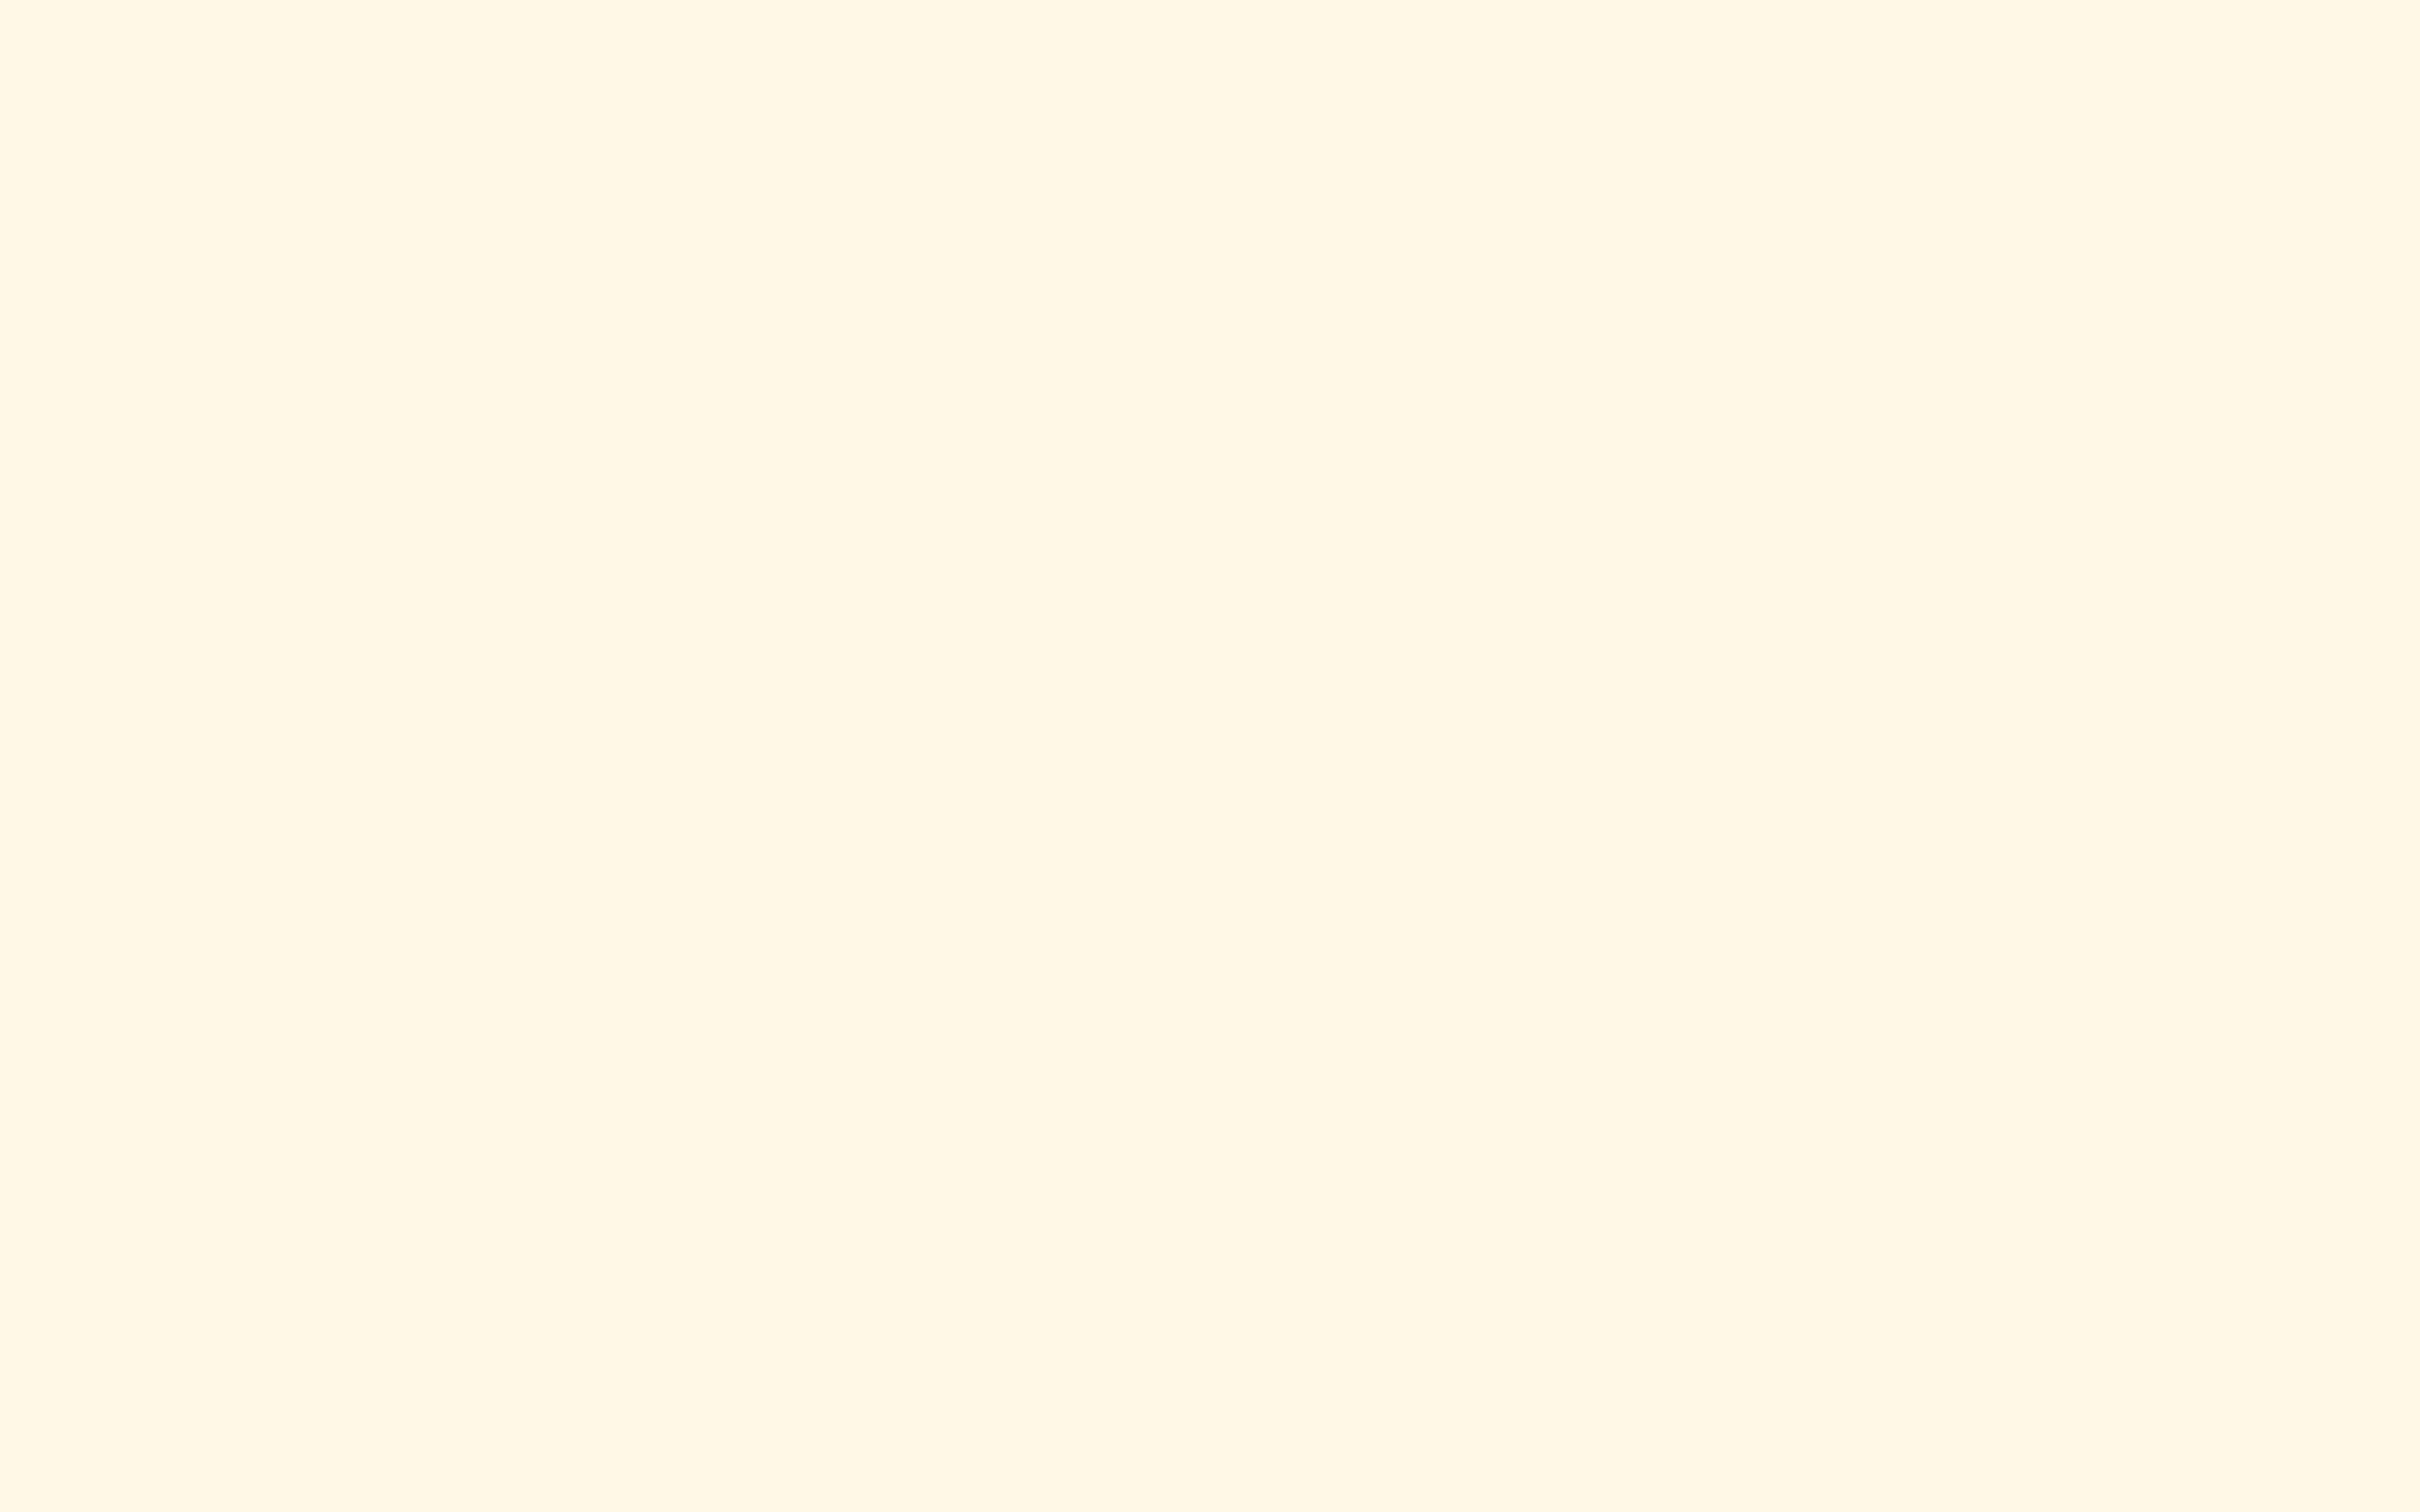 2880x1800 Cosmic Latte Solid Color Background